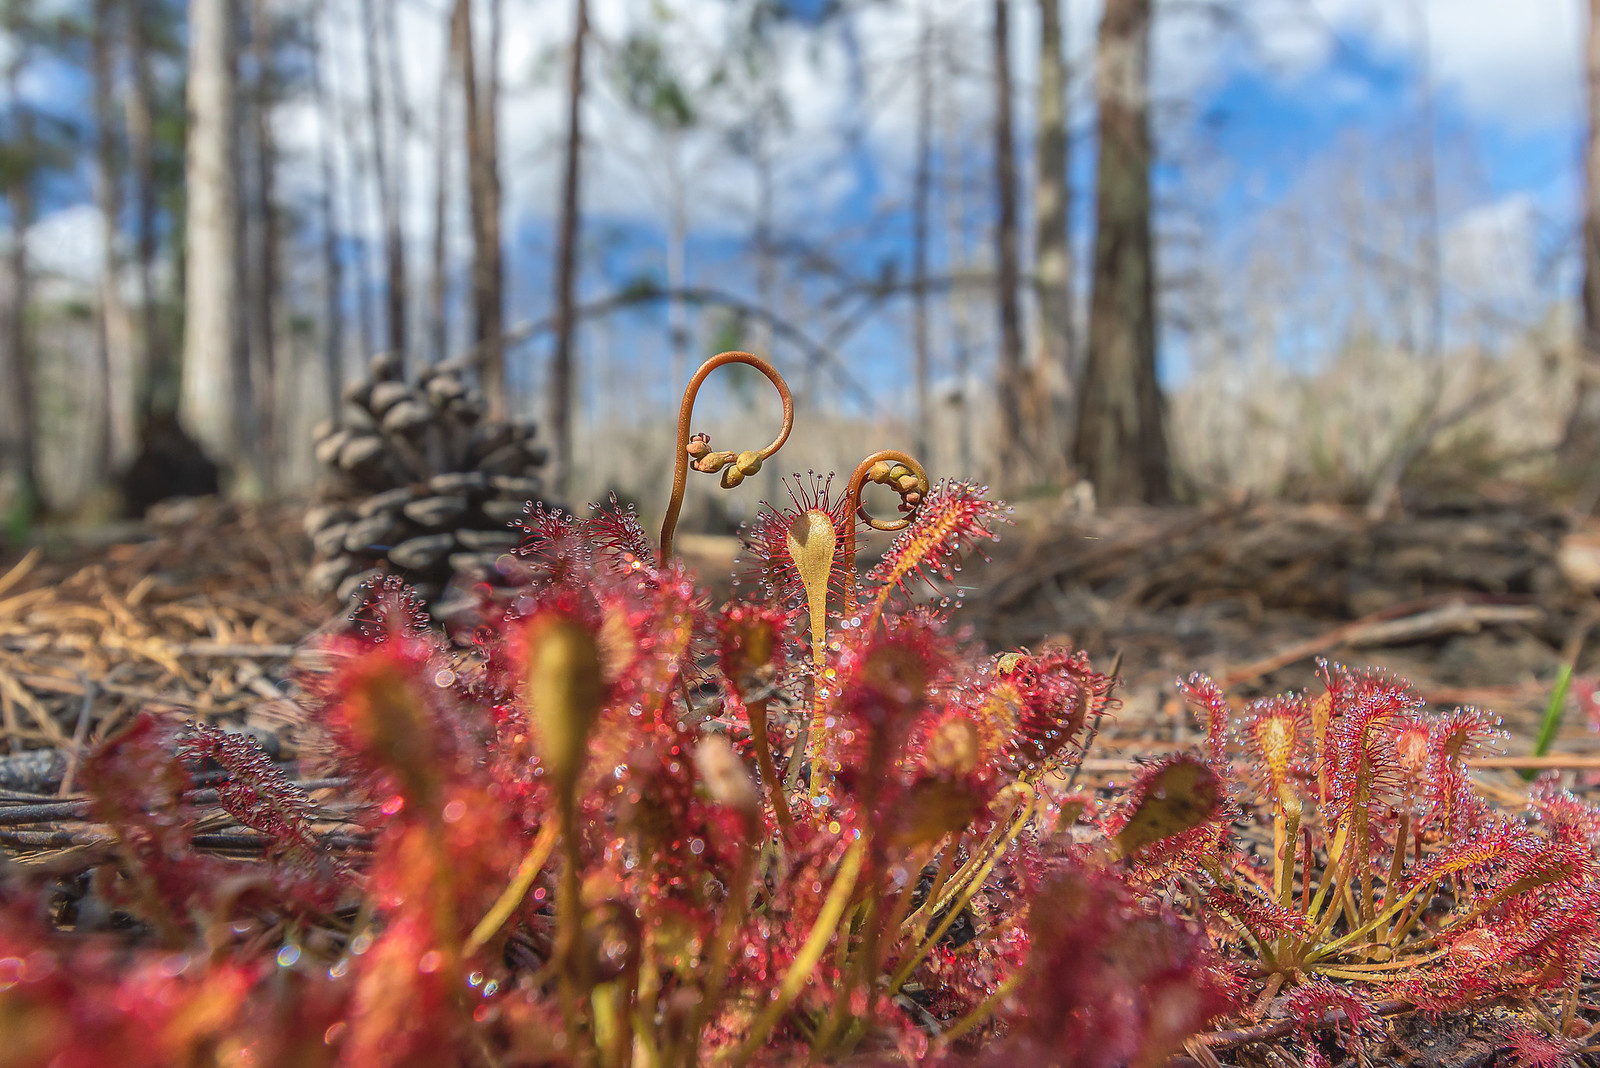 Wild pink sundew (Drosera capillaris) at the edge of a cypress dome swamp in Orlando, Florida [OC] [1600×1068]